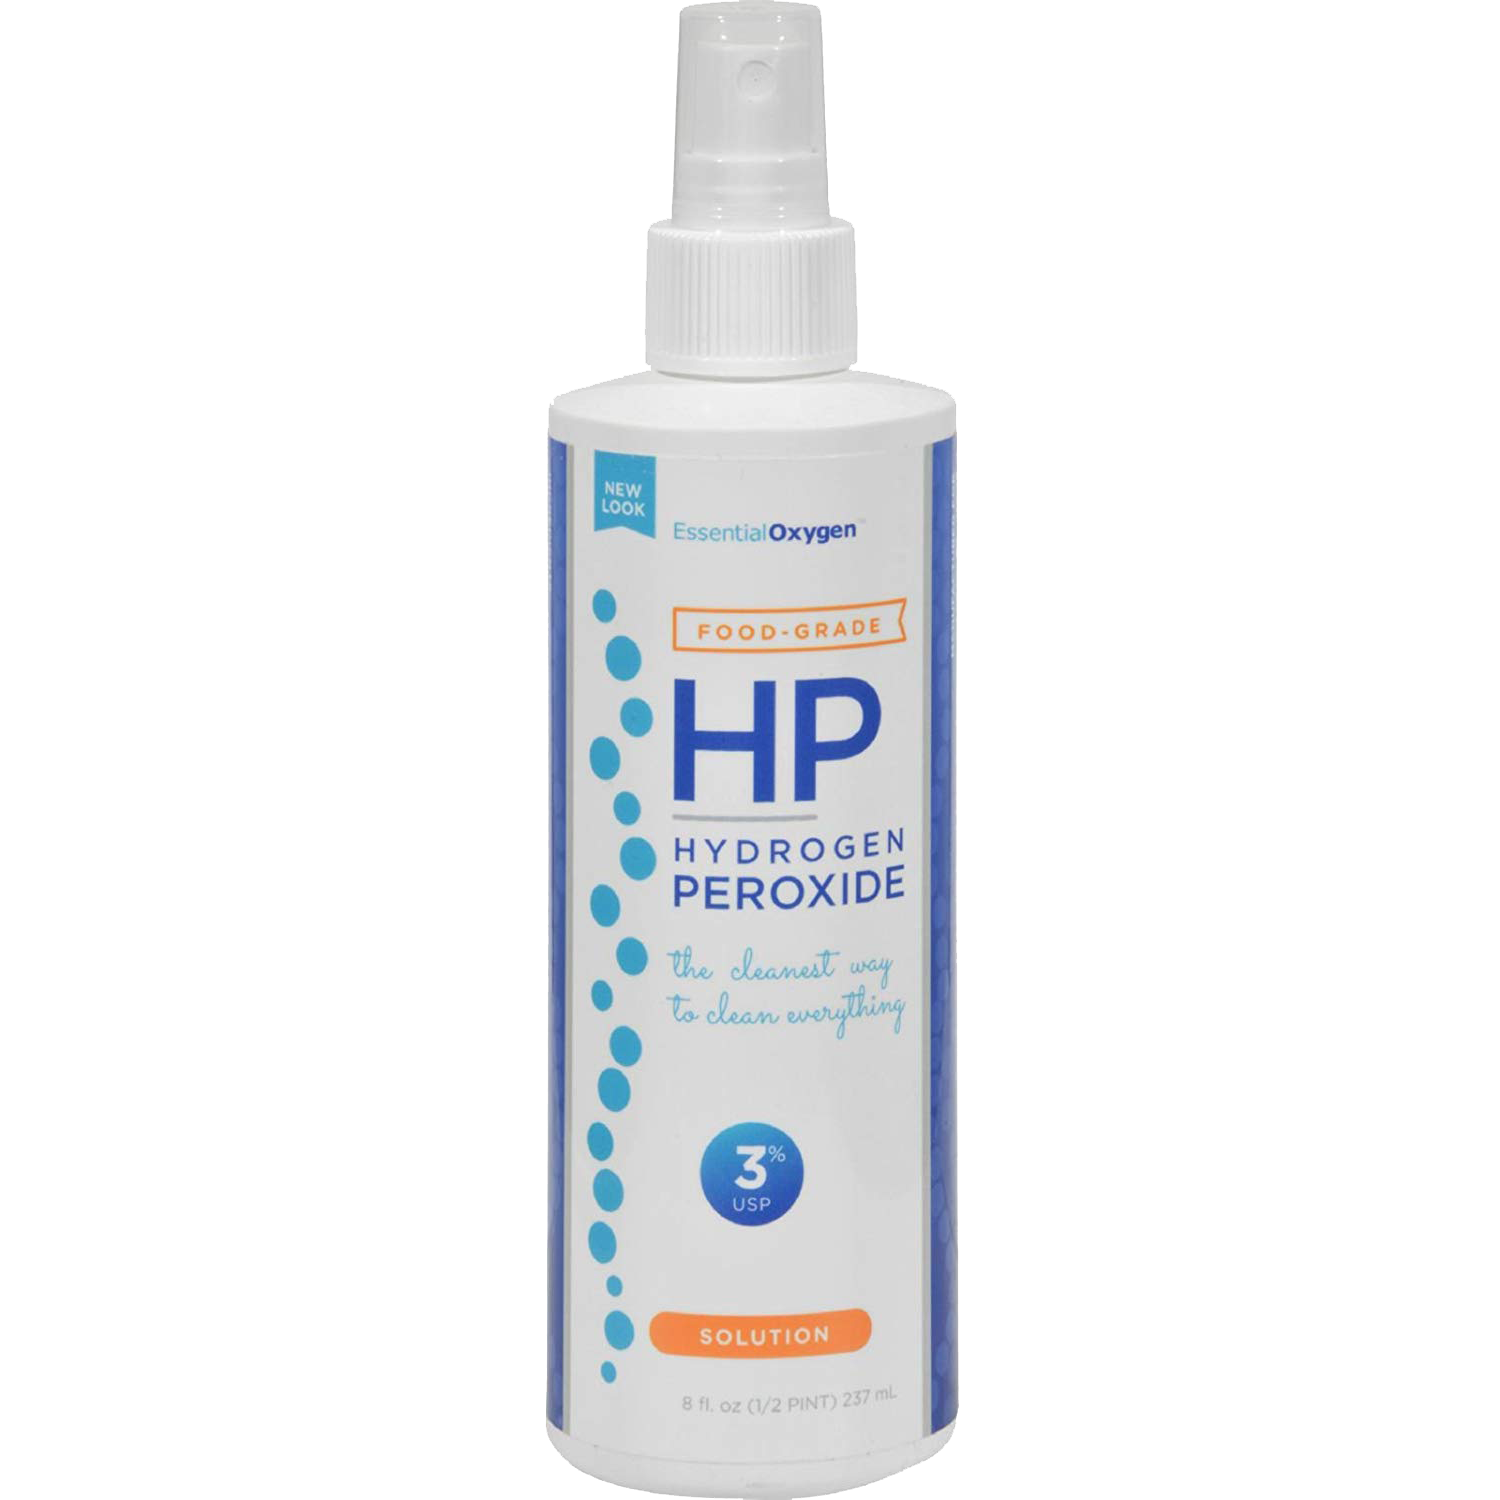 Hydrogen peroxide is a natural bleaching agent and can kill